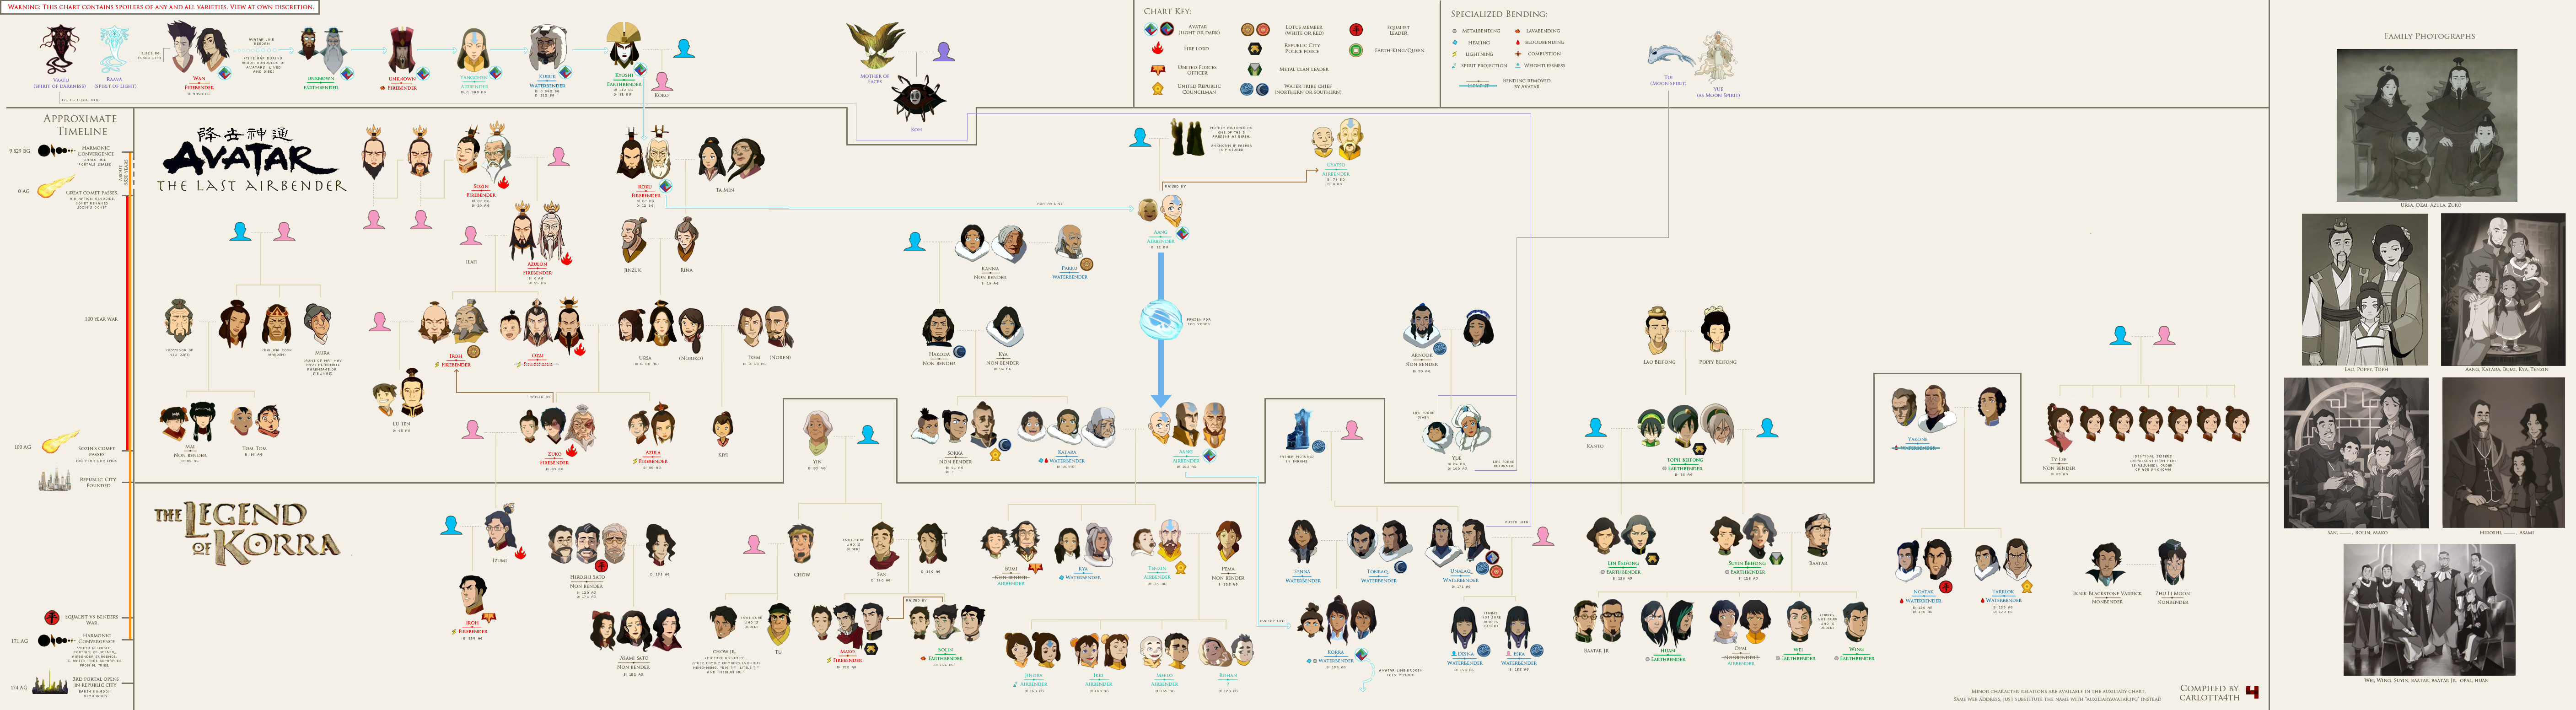 Avatar Family Tree Avatar The Last Airbender The Legend Of Korra Know Your Meme